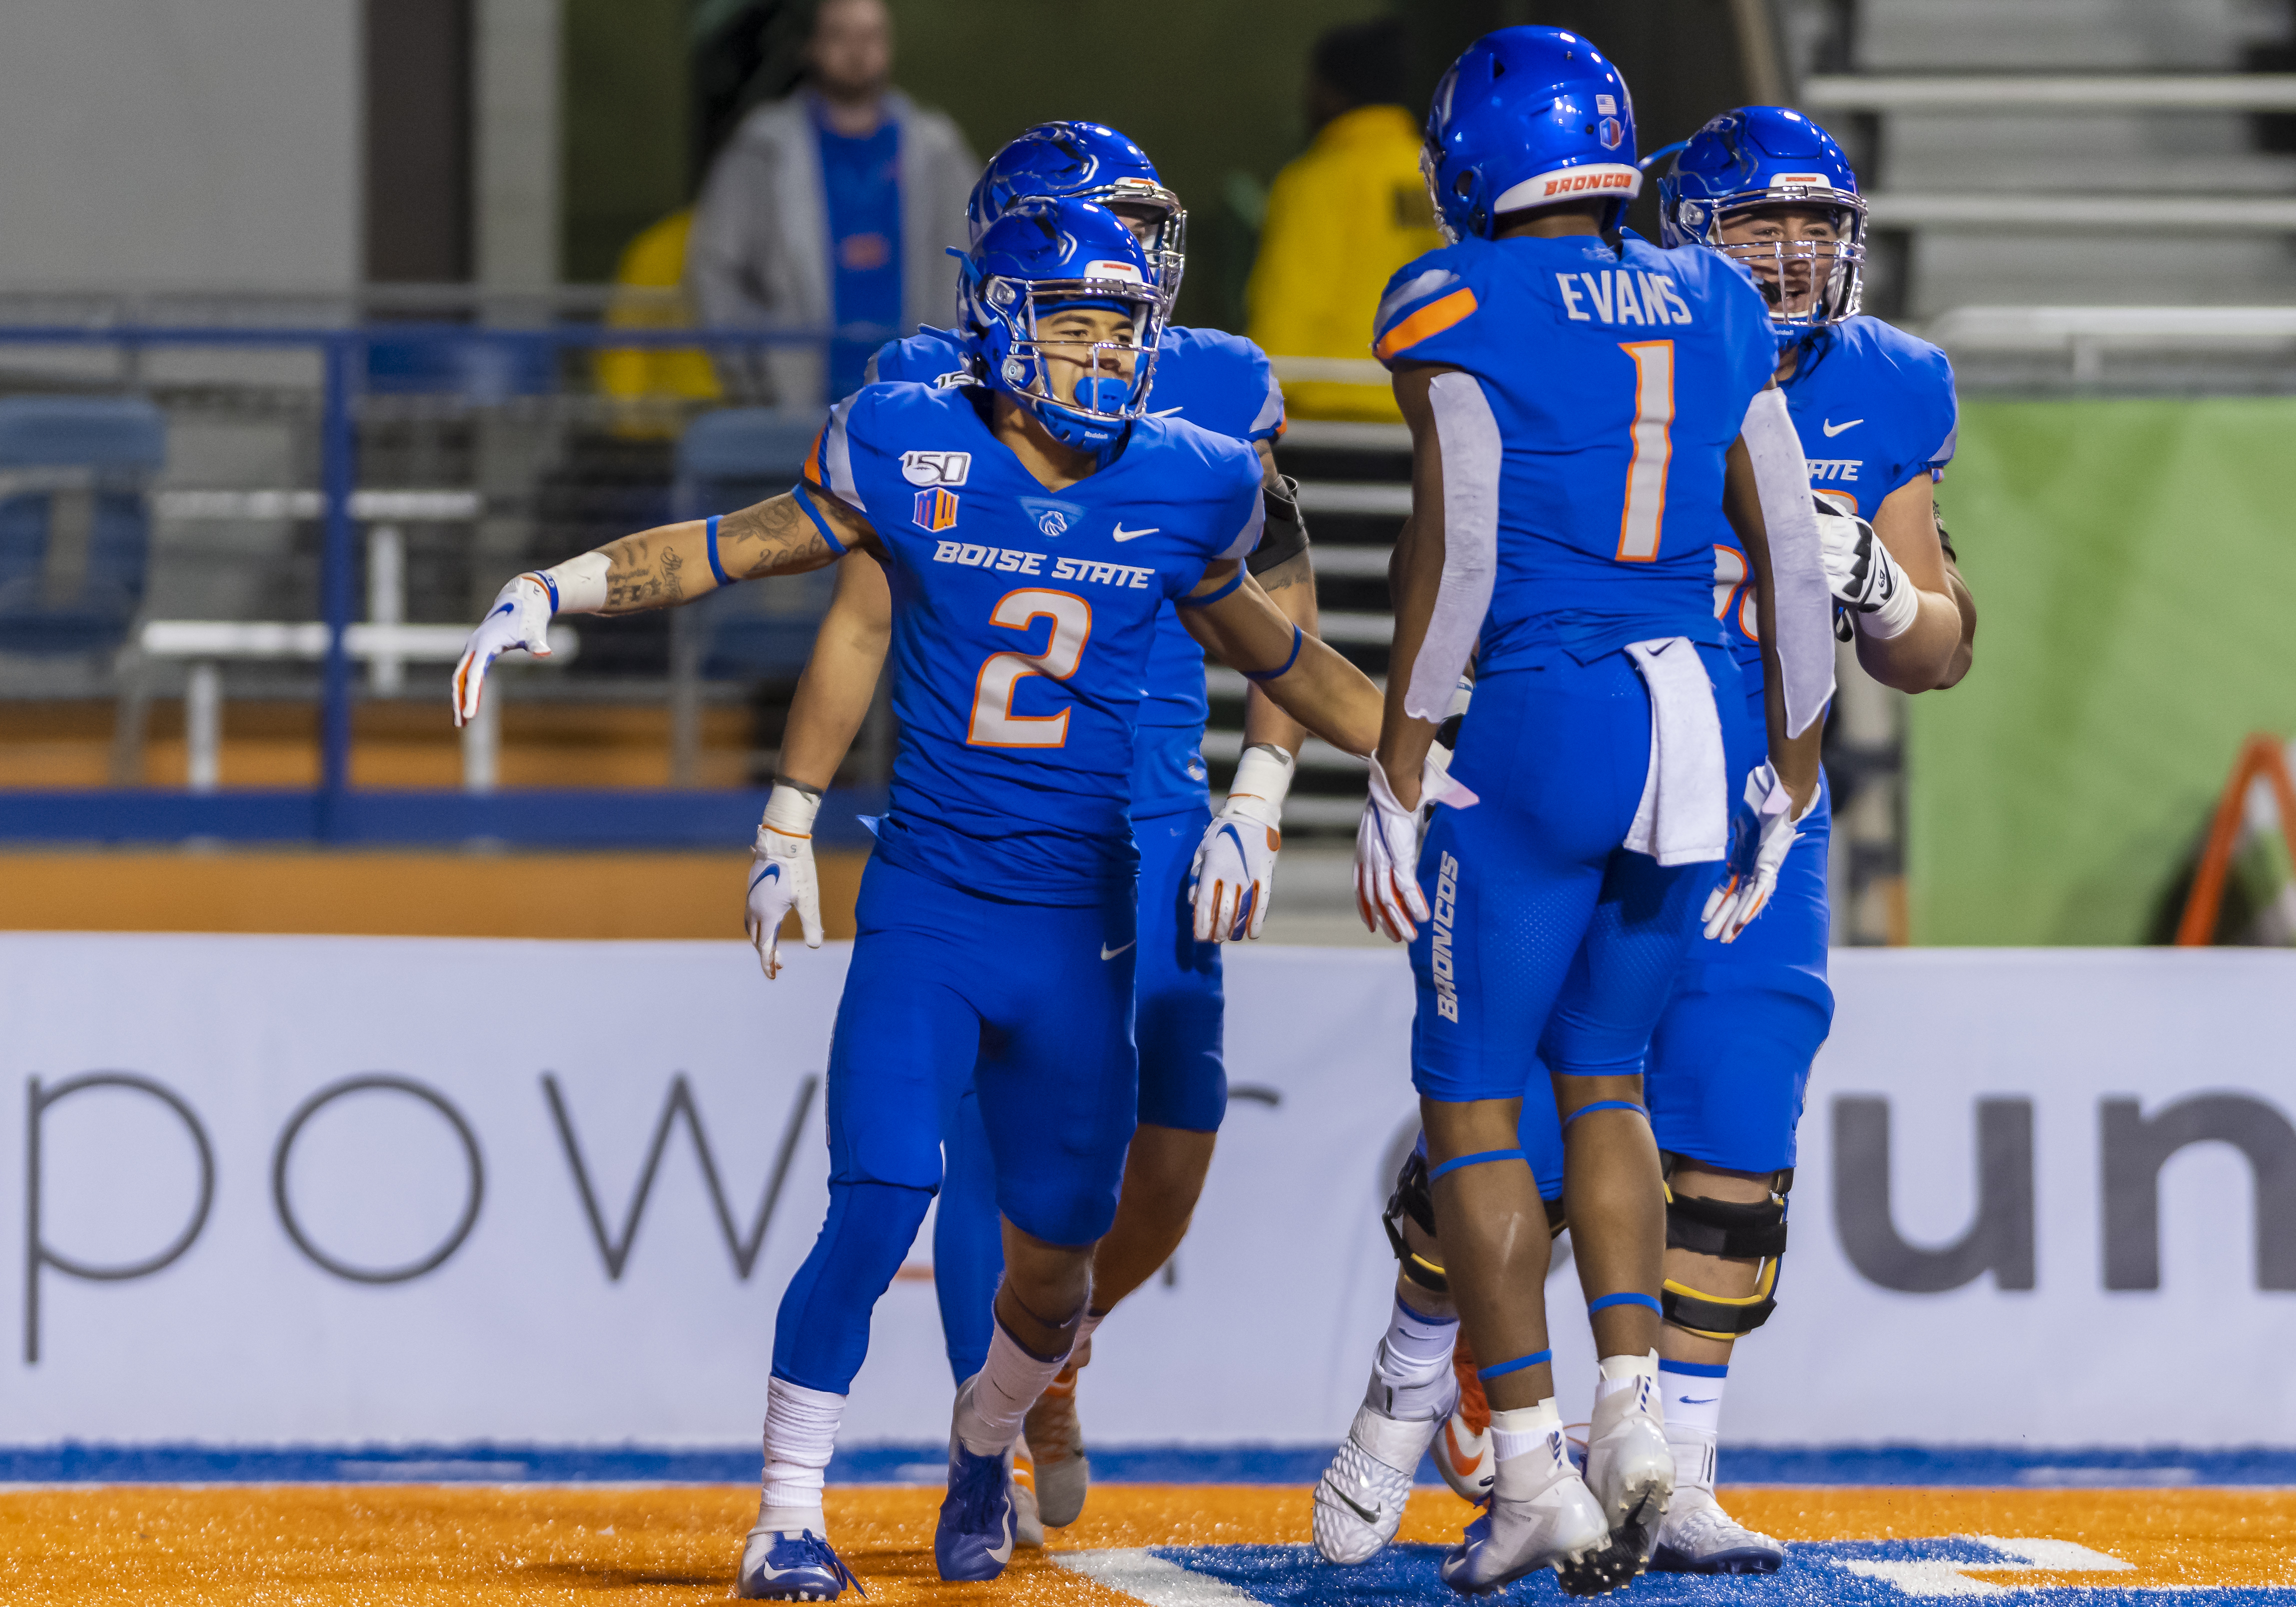 COLLEGE FOOTBALL: NOV 16 New Mexico at Boise State